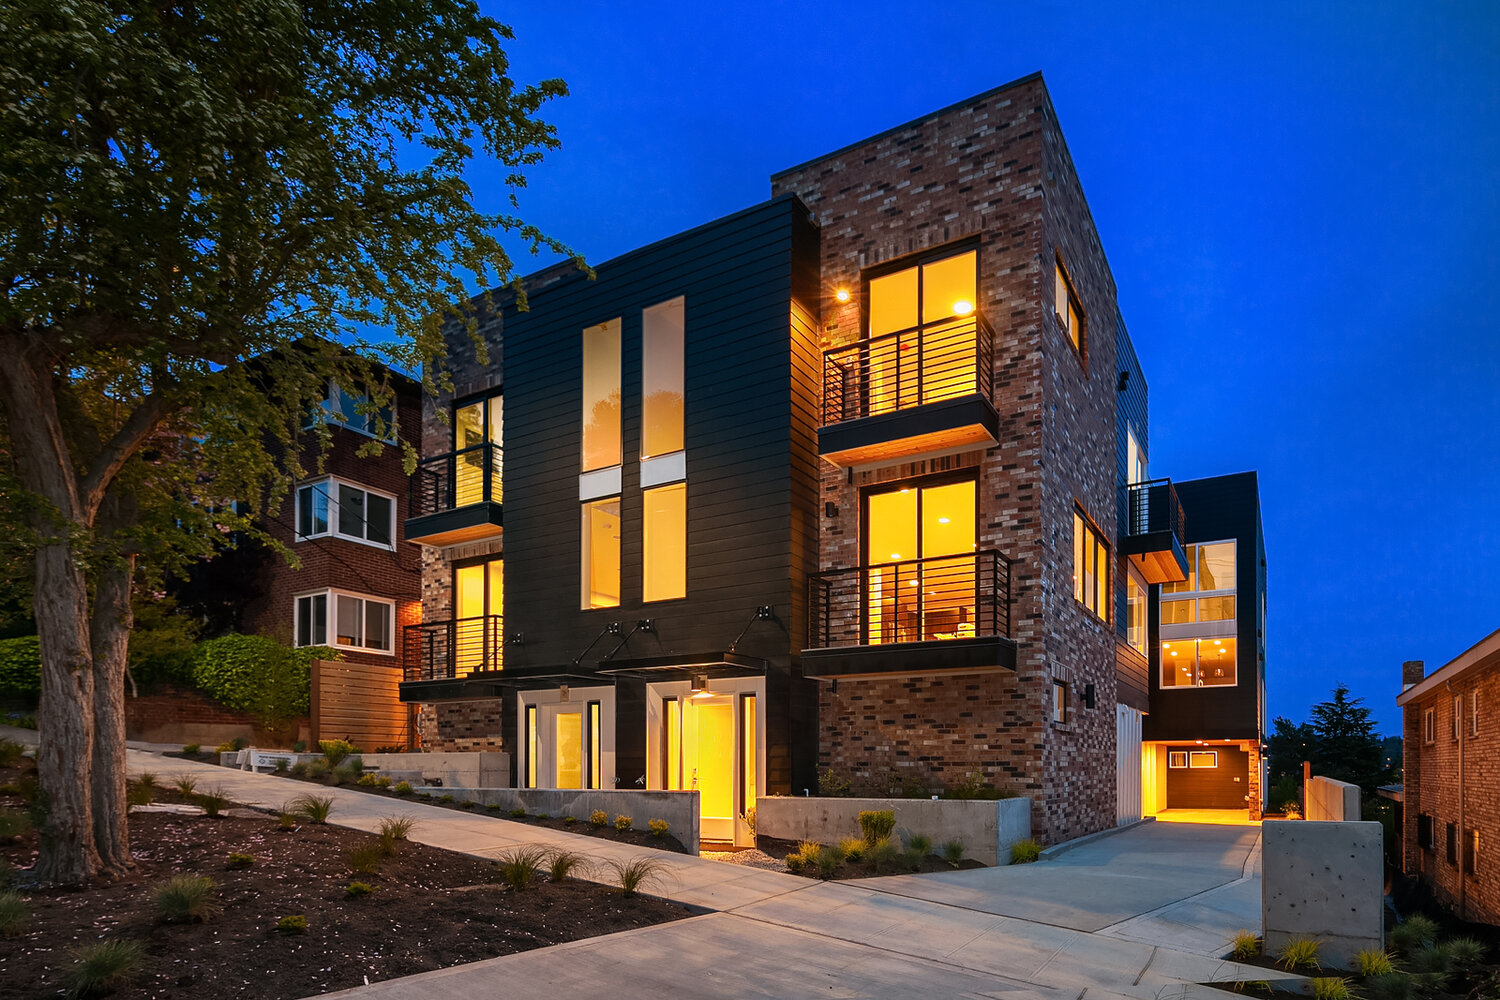 Ascent — Queen Anne - Quintessential Queen Anne aesthetics with a modern flare